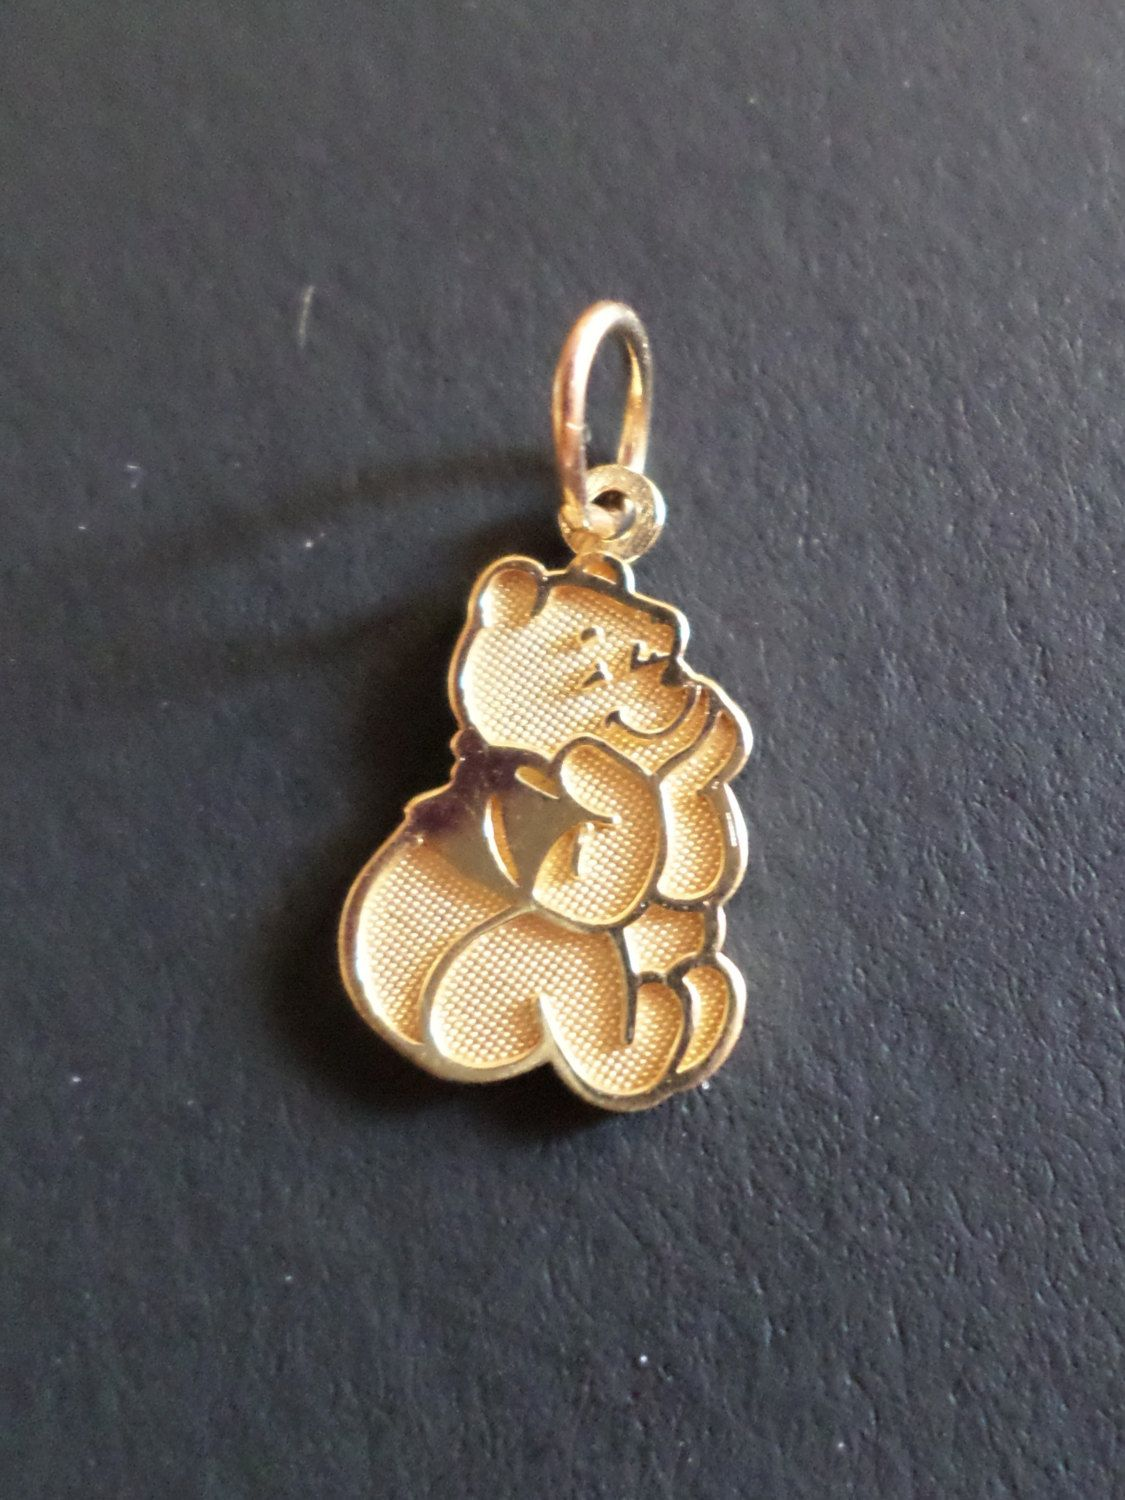 14K Yellow Gold Stamped VD Signed Winnie The Pooh Disney Character Small Pendant By Bestintreasures On Etsy